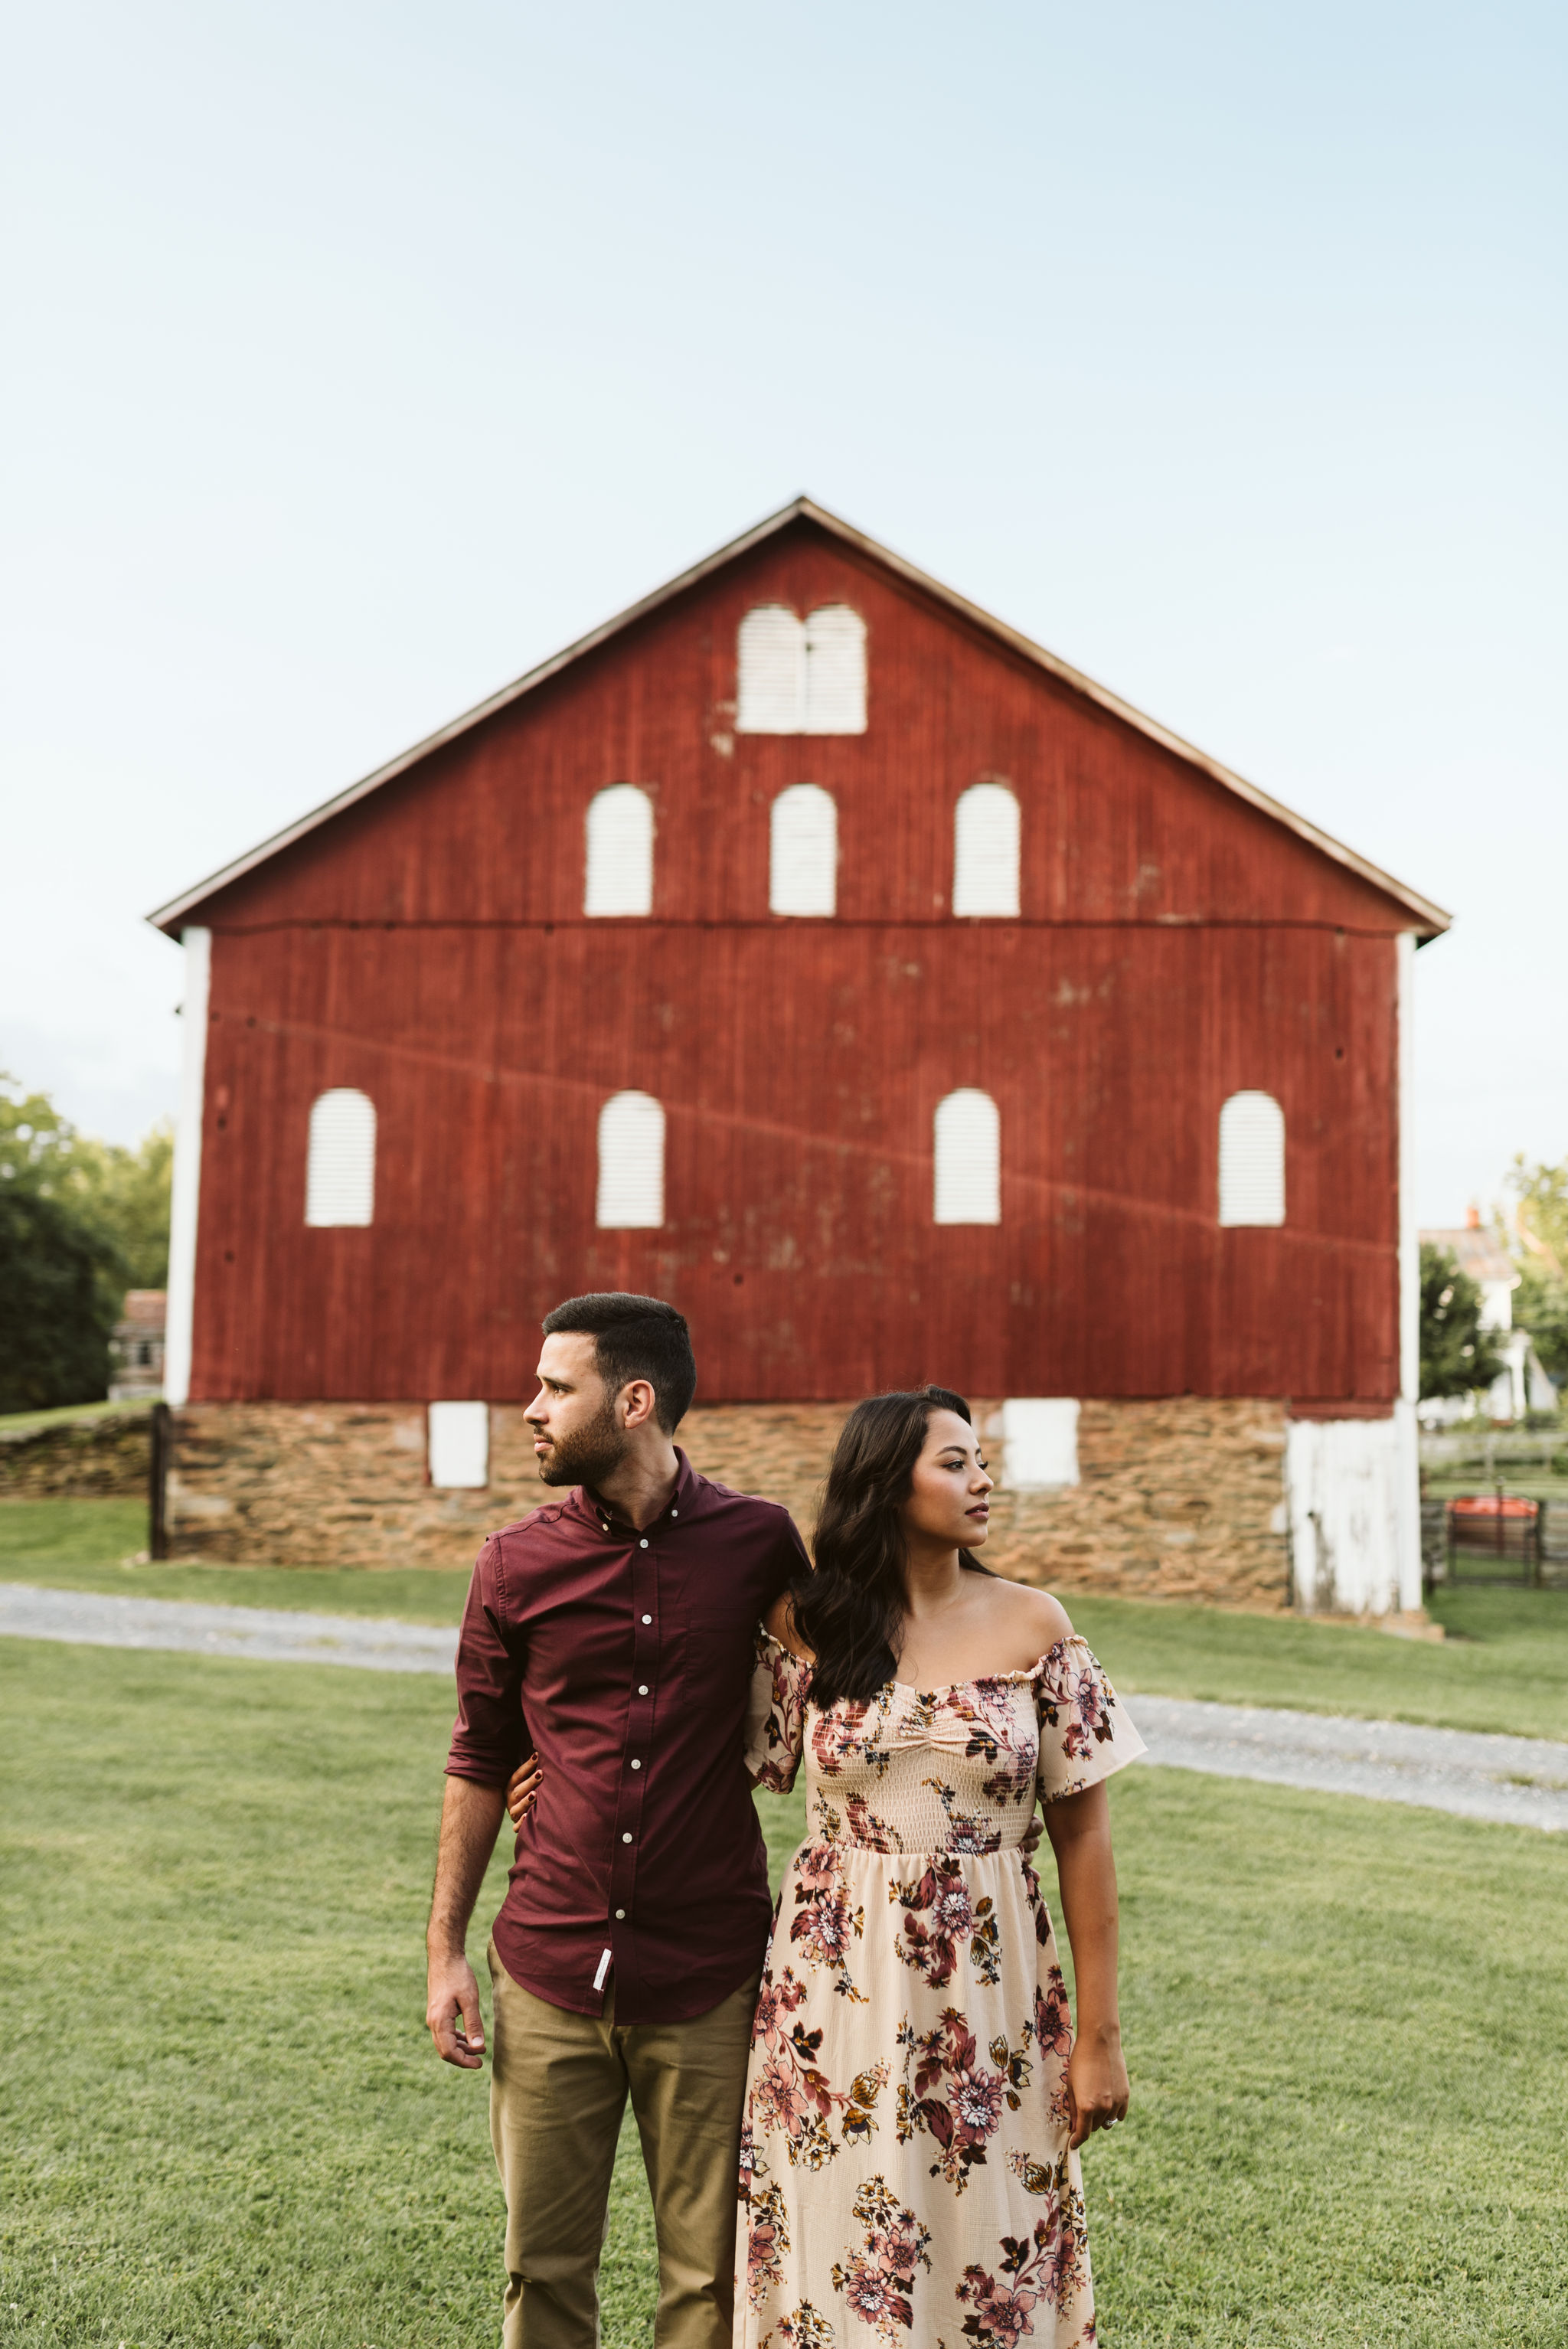 Frederick Maryland, Baltimore Wedding Photographer, Engagement, Bend in the River Farm, Outdoor, Rustic, Nature, Portrait of Couple in Front of Red Barn